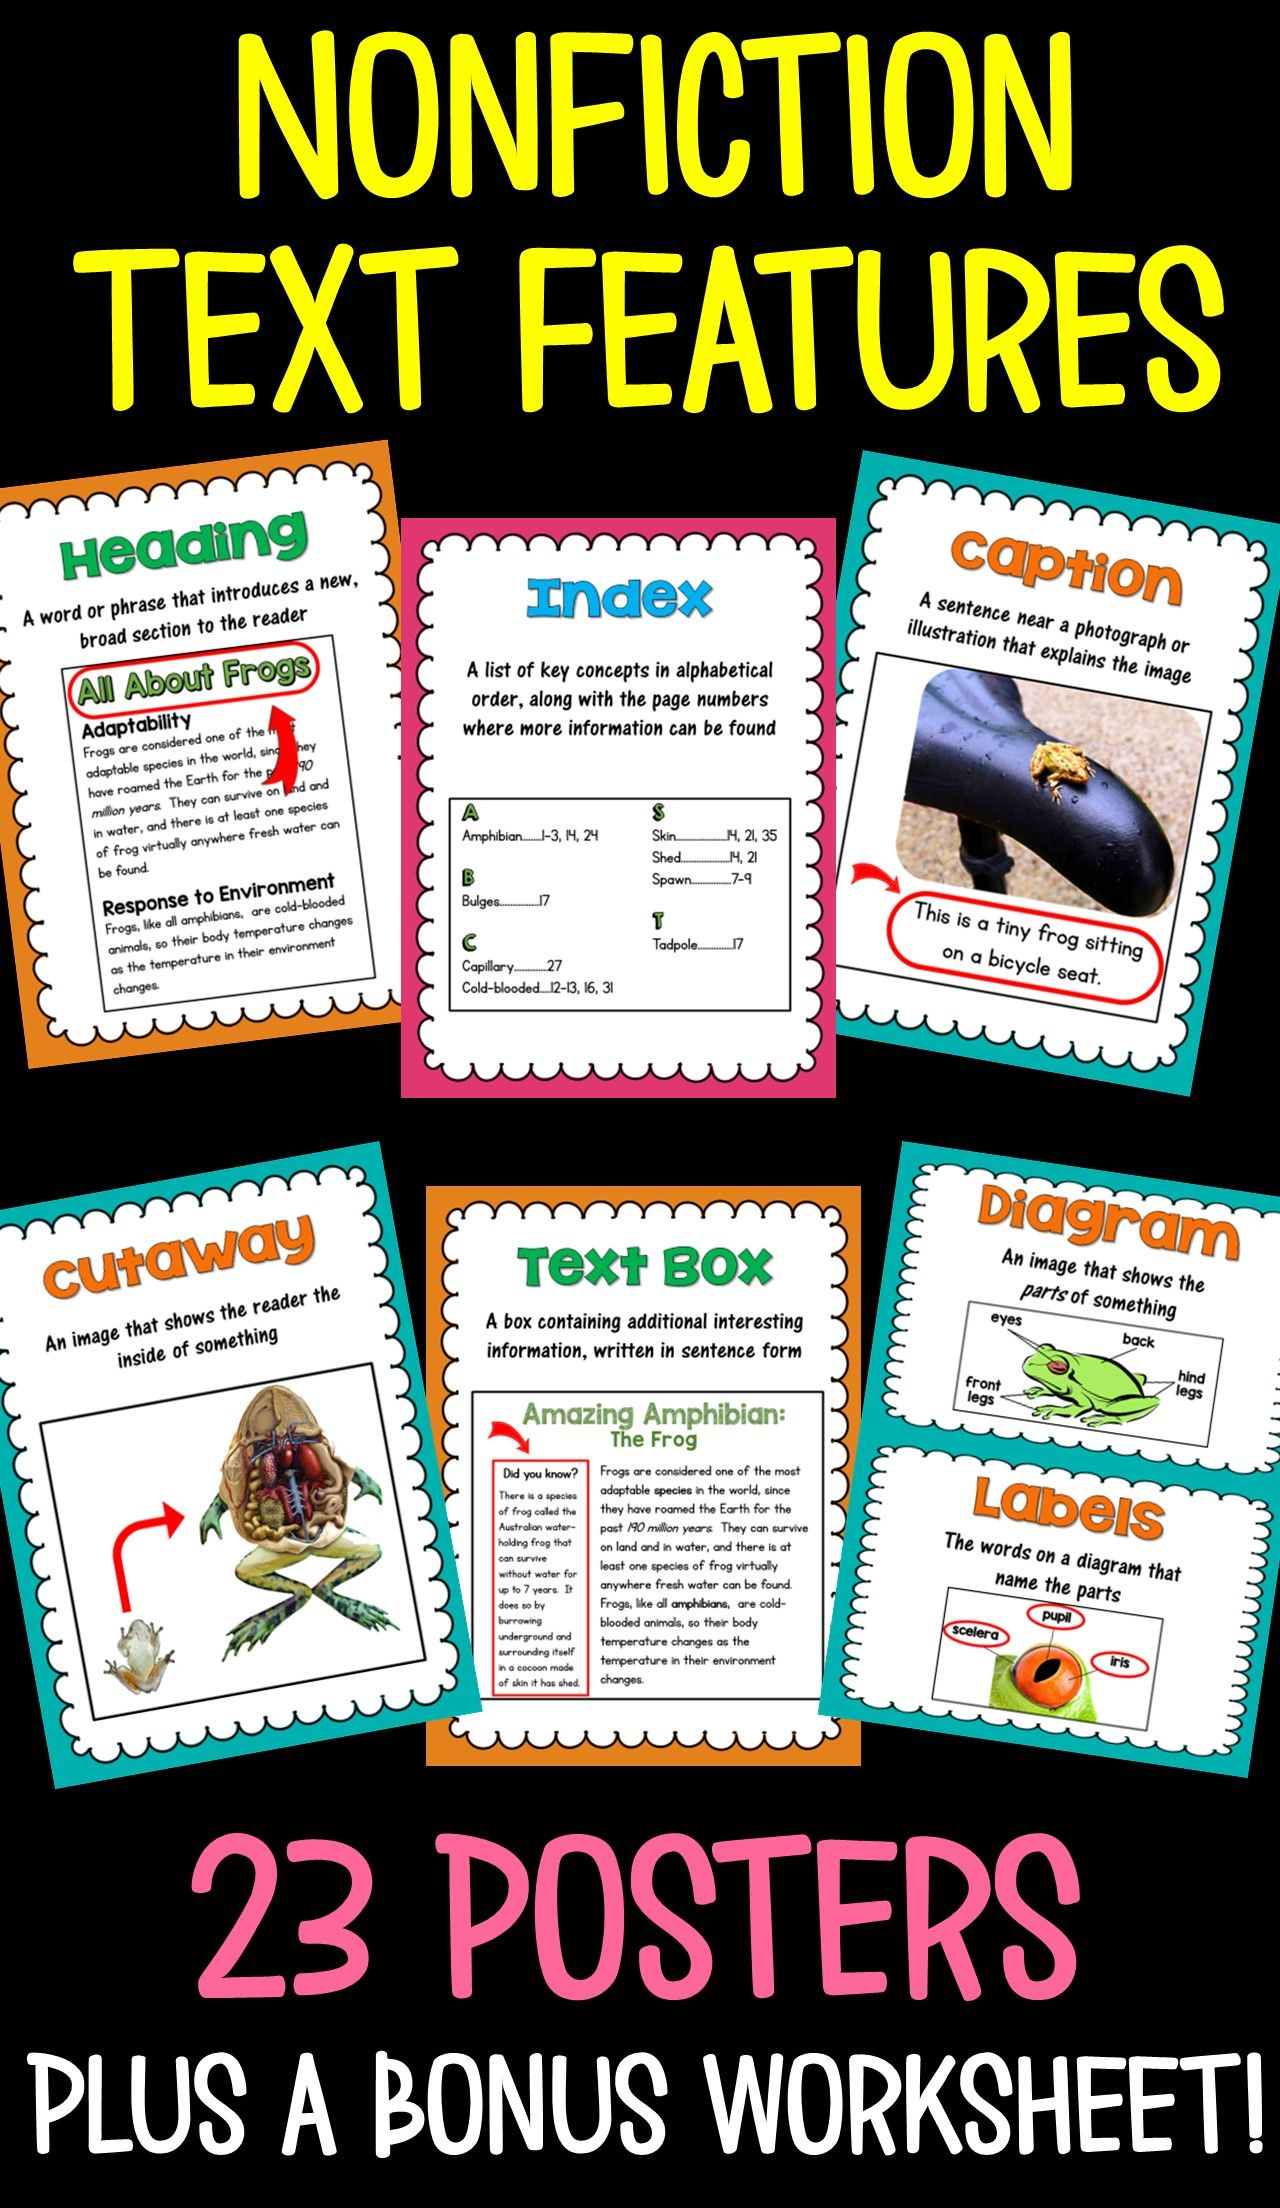 Nonfiction Text Feature Posters And A Matching Worksheet